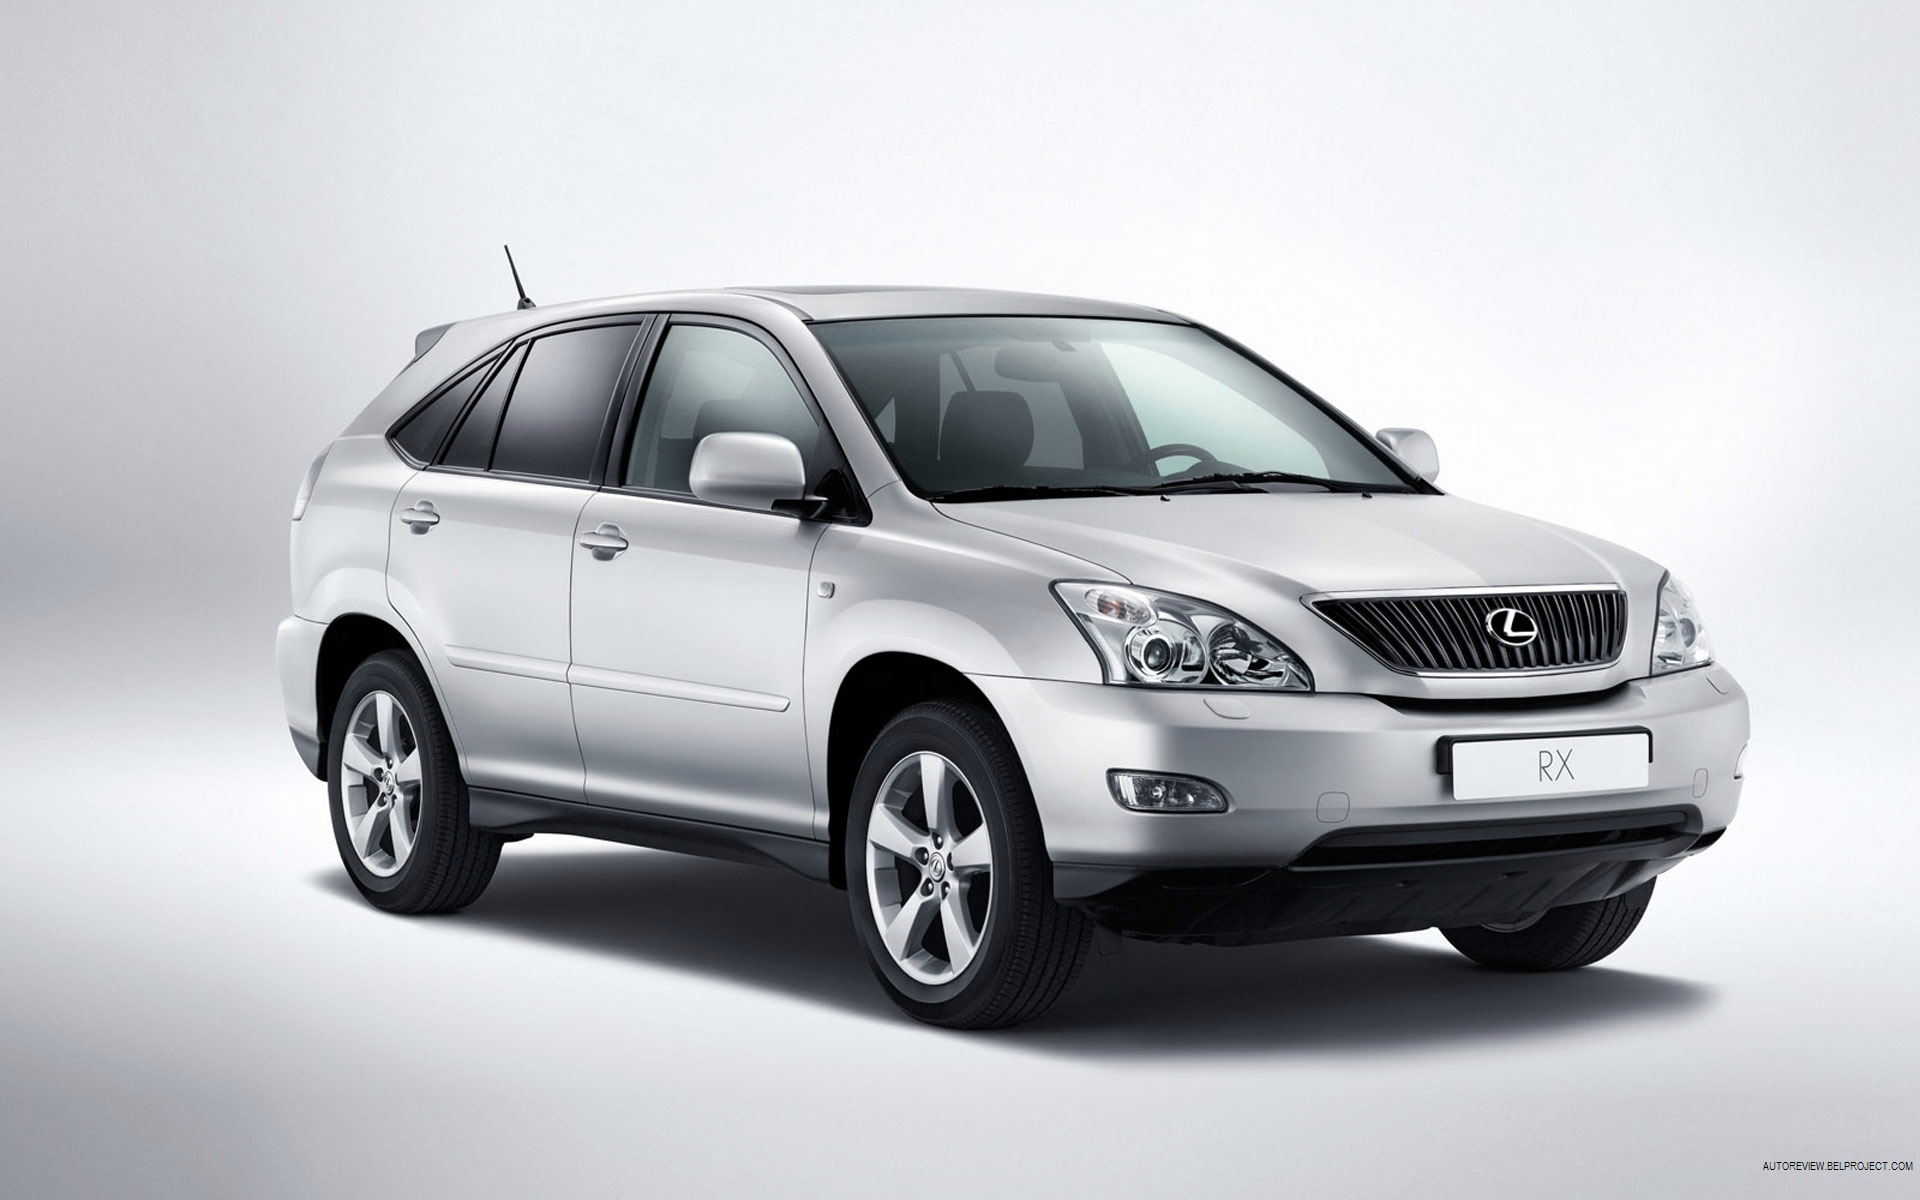 2007 lexus rx 350 information and photos momentcar. Black Bedroom Furniture Sets. Home Design Ideas